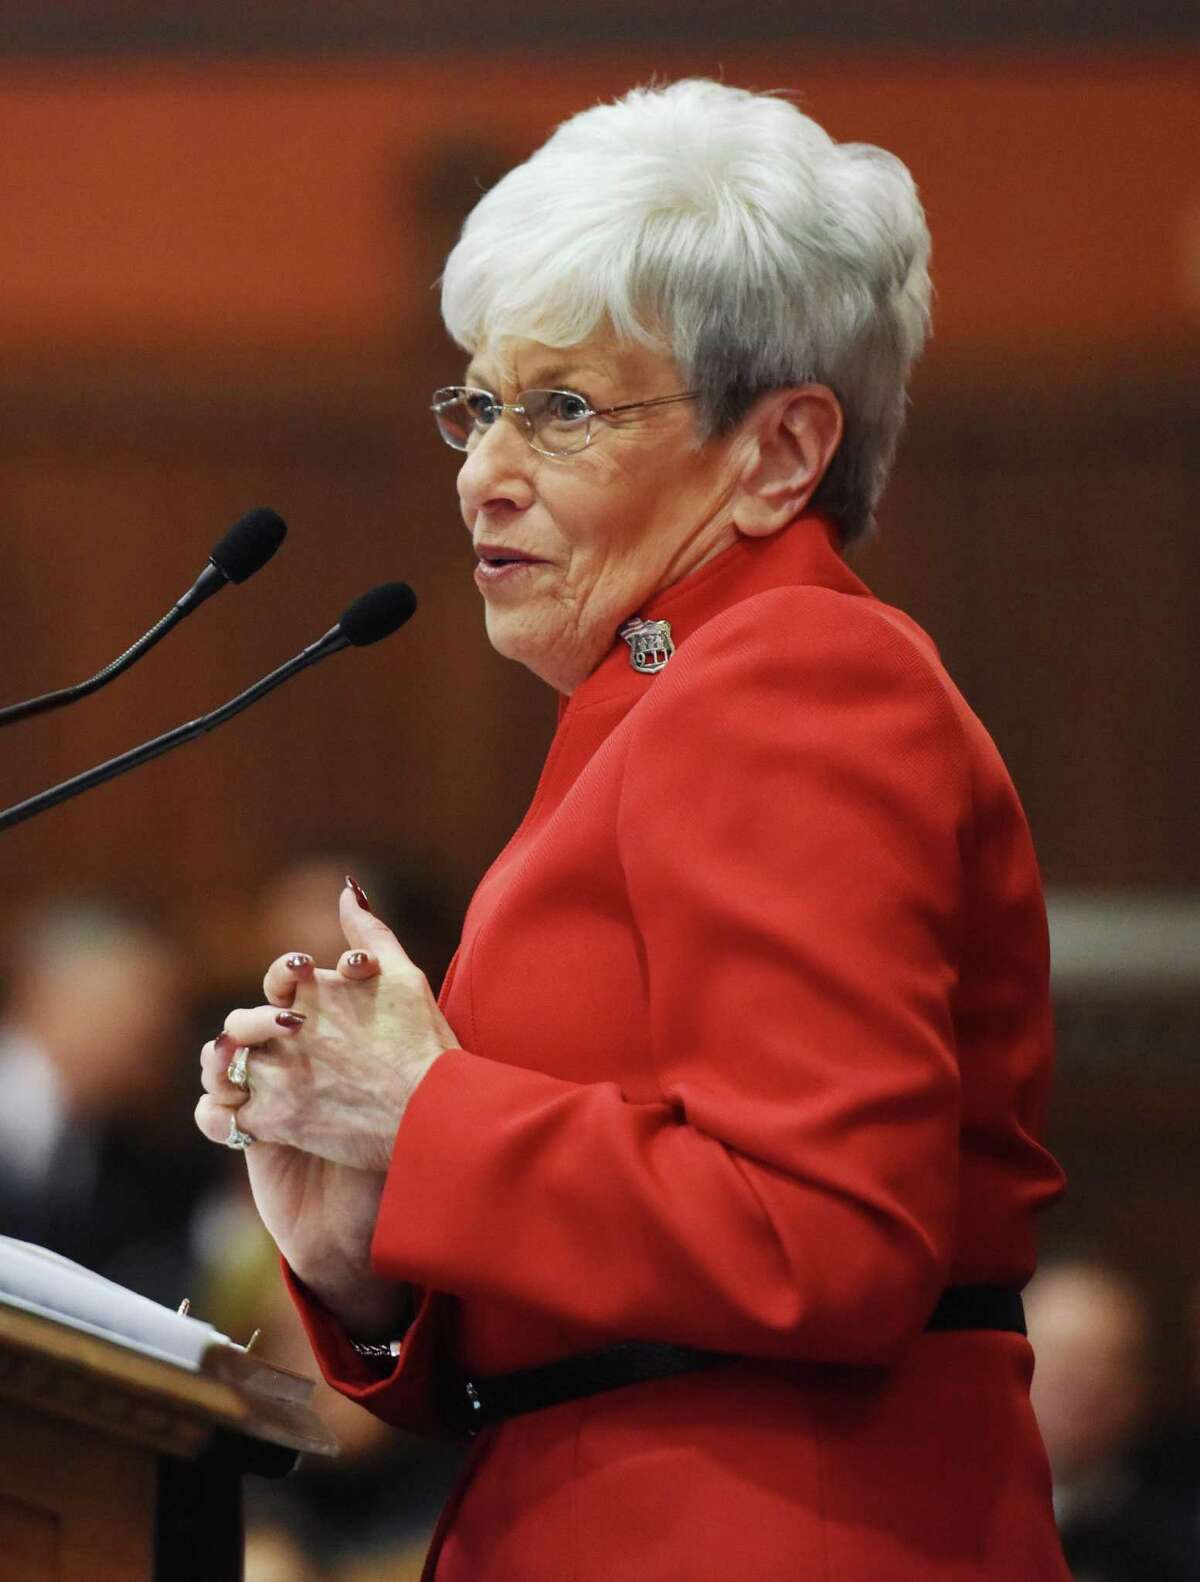 Connecticut Lt. Gov. Nancy Wyman speaks during the joint session of the Connecticut General Assembly in the Hall of the House of Representatives at the Capitol building in Hartford, Conn. Wednesday, Jan. 7, 2015.